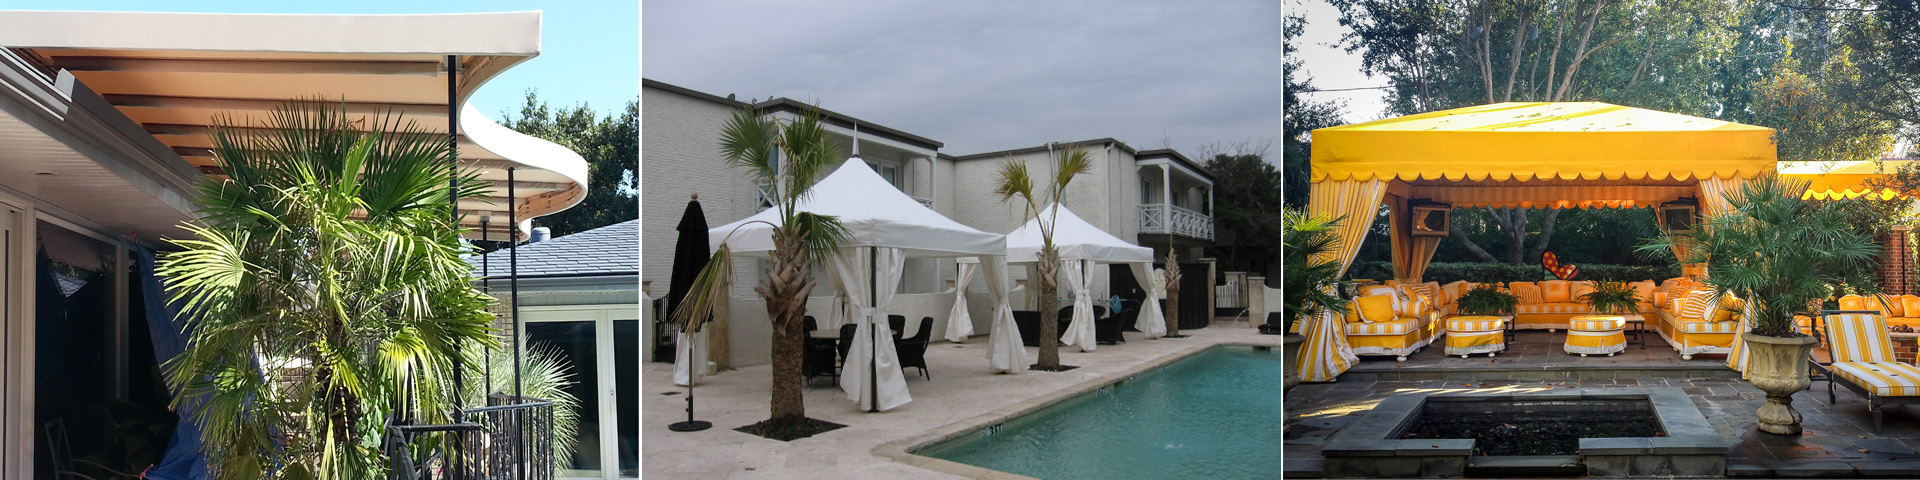 retractable special gallery usa canopies awning by awnings and litra